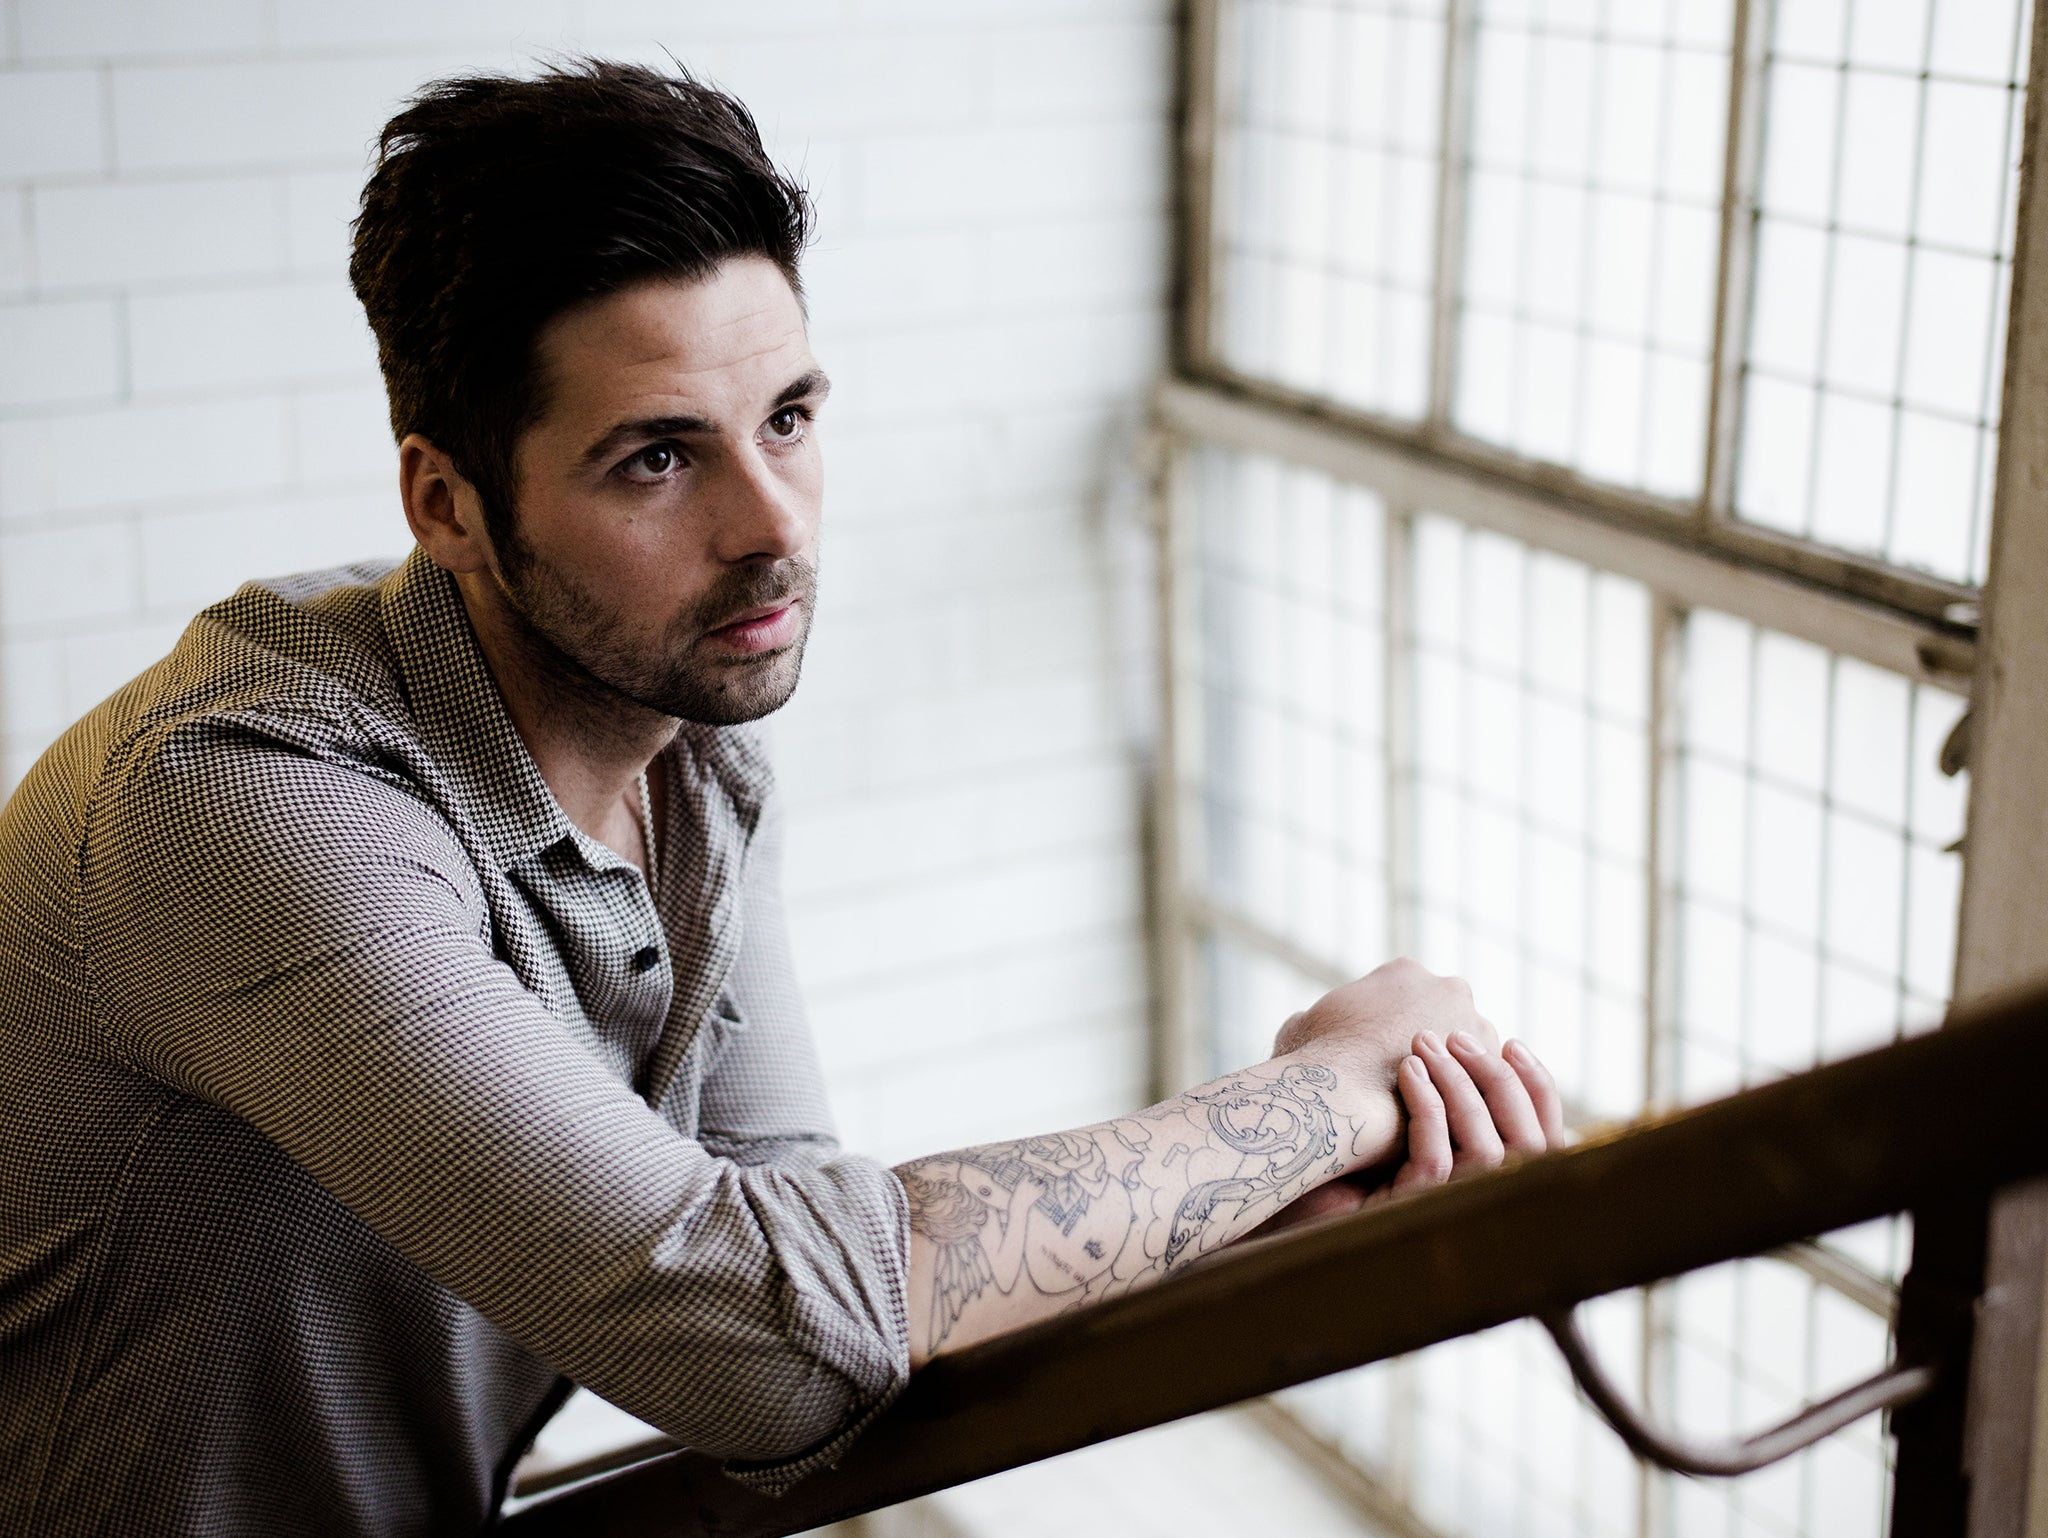 Ben Haenow axed by Simon Cowell after latest single fails to chart